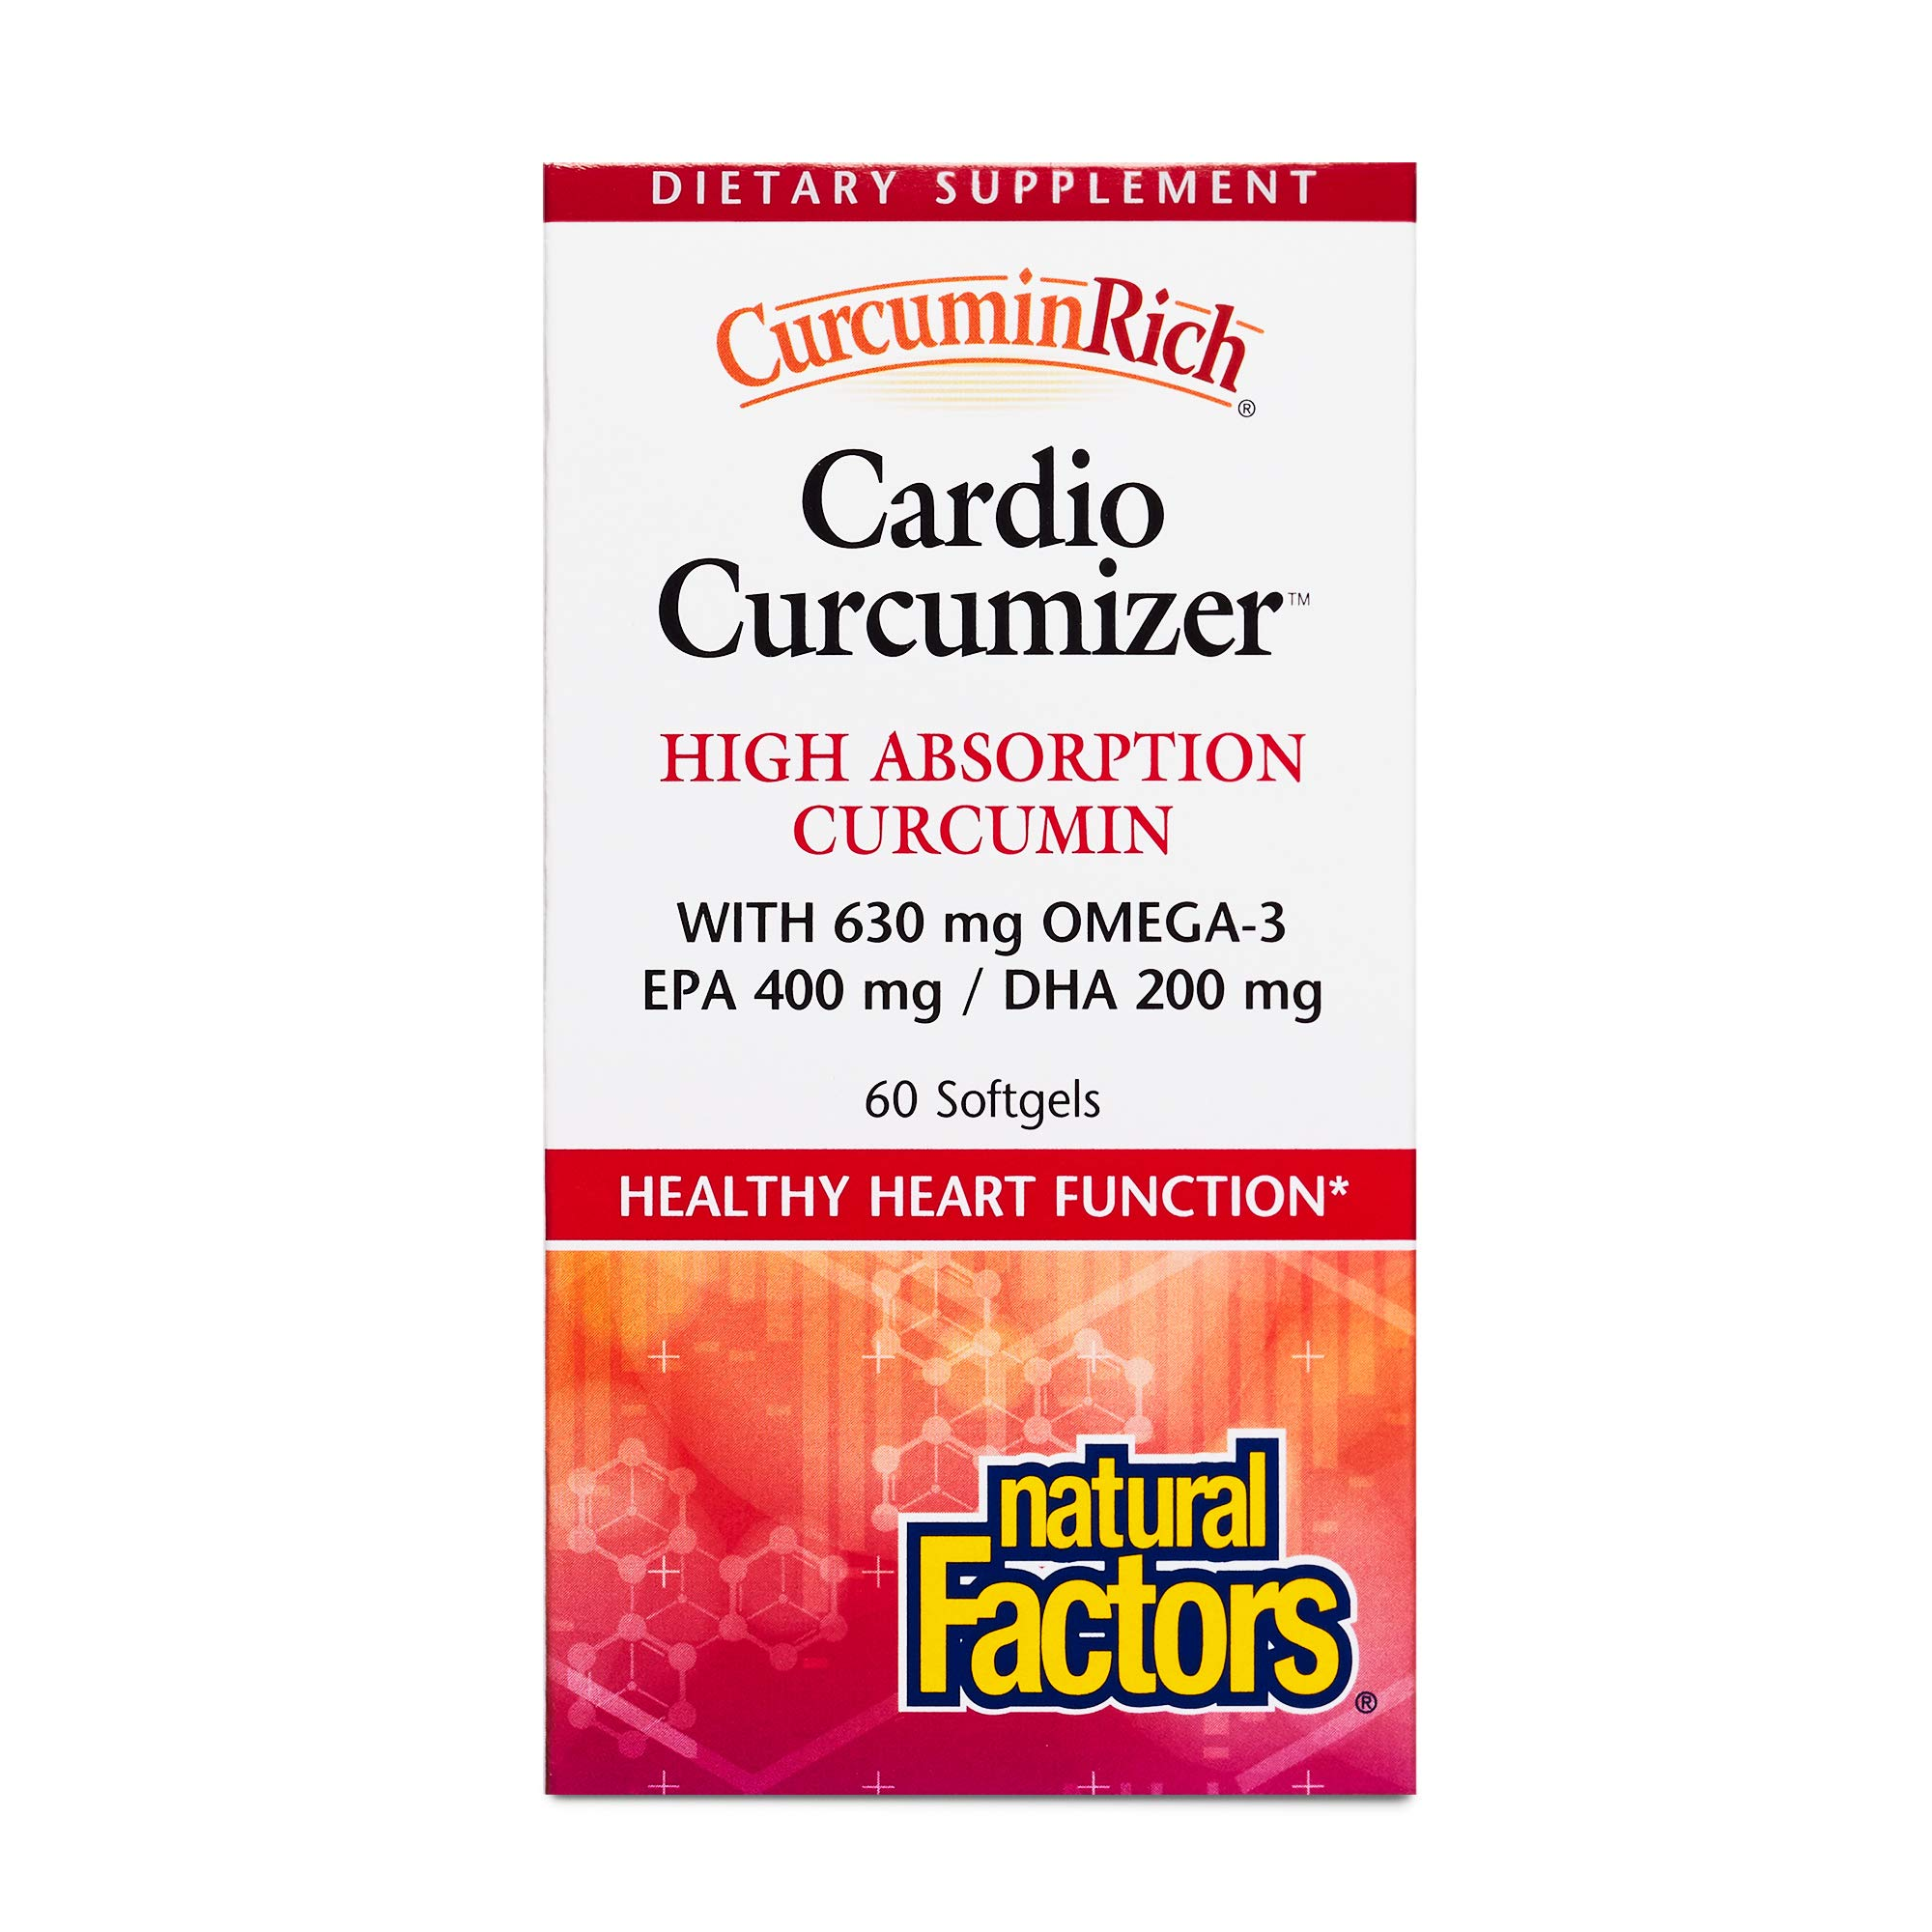 CurcuminRich by Natural Factors, Cardio Curcumizer, Supports a Healthy Heart, Joints and Natural Inflammatory Response with Omega-3 EPA and DHA, 60 softgels (60 Servings) by Natural Factors